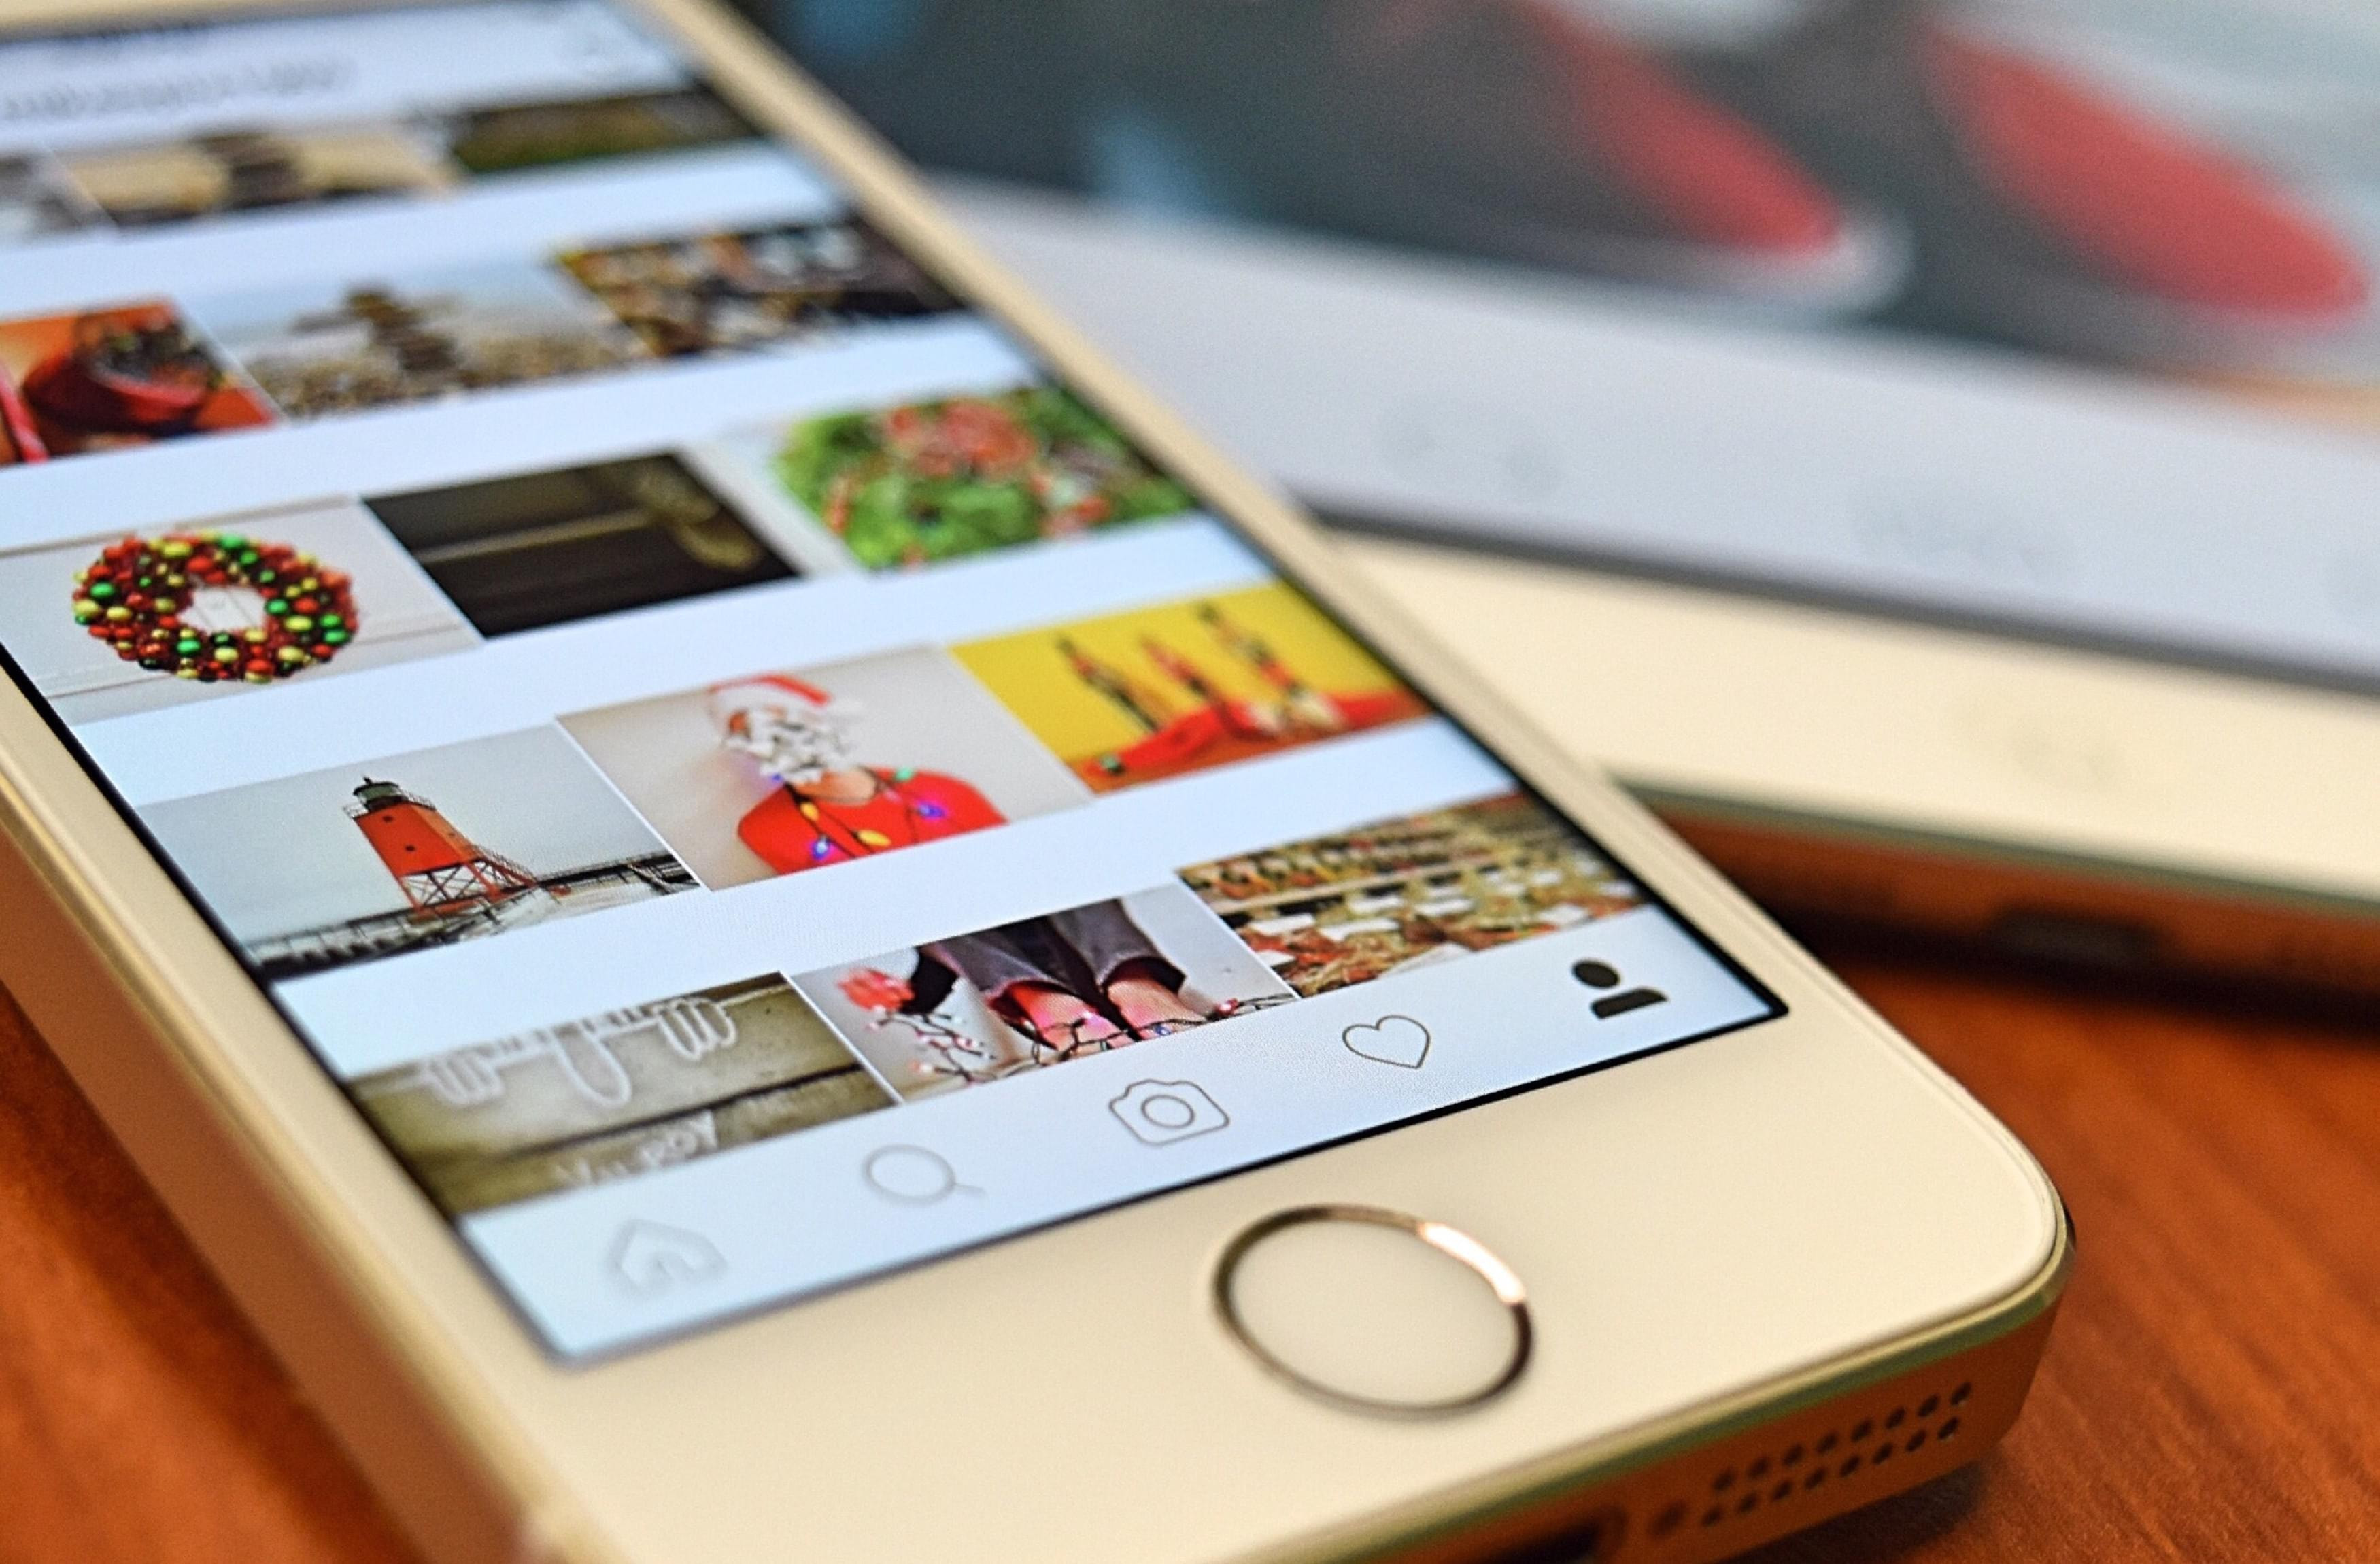 How to Take Your Instagram Marketing to the Next Level